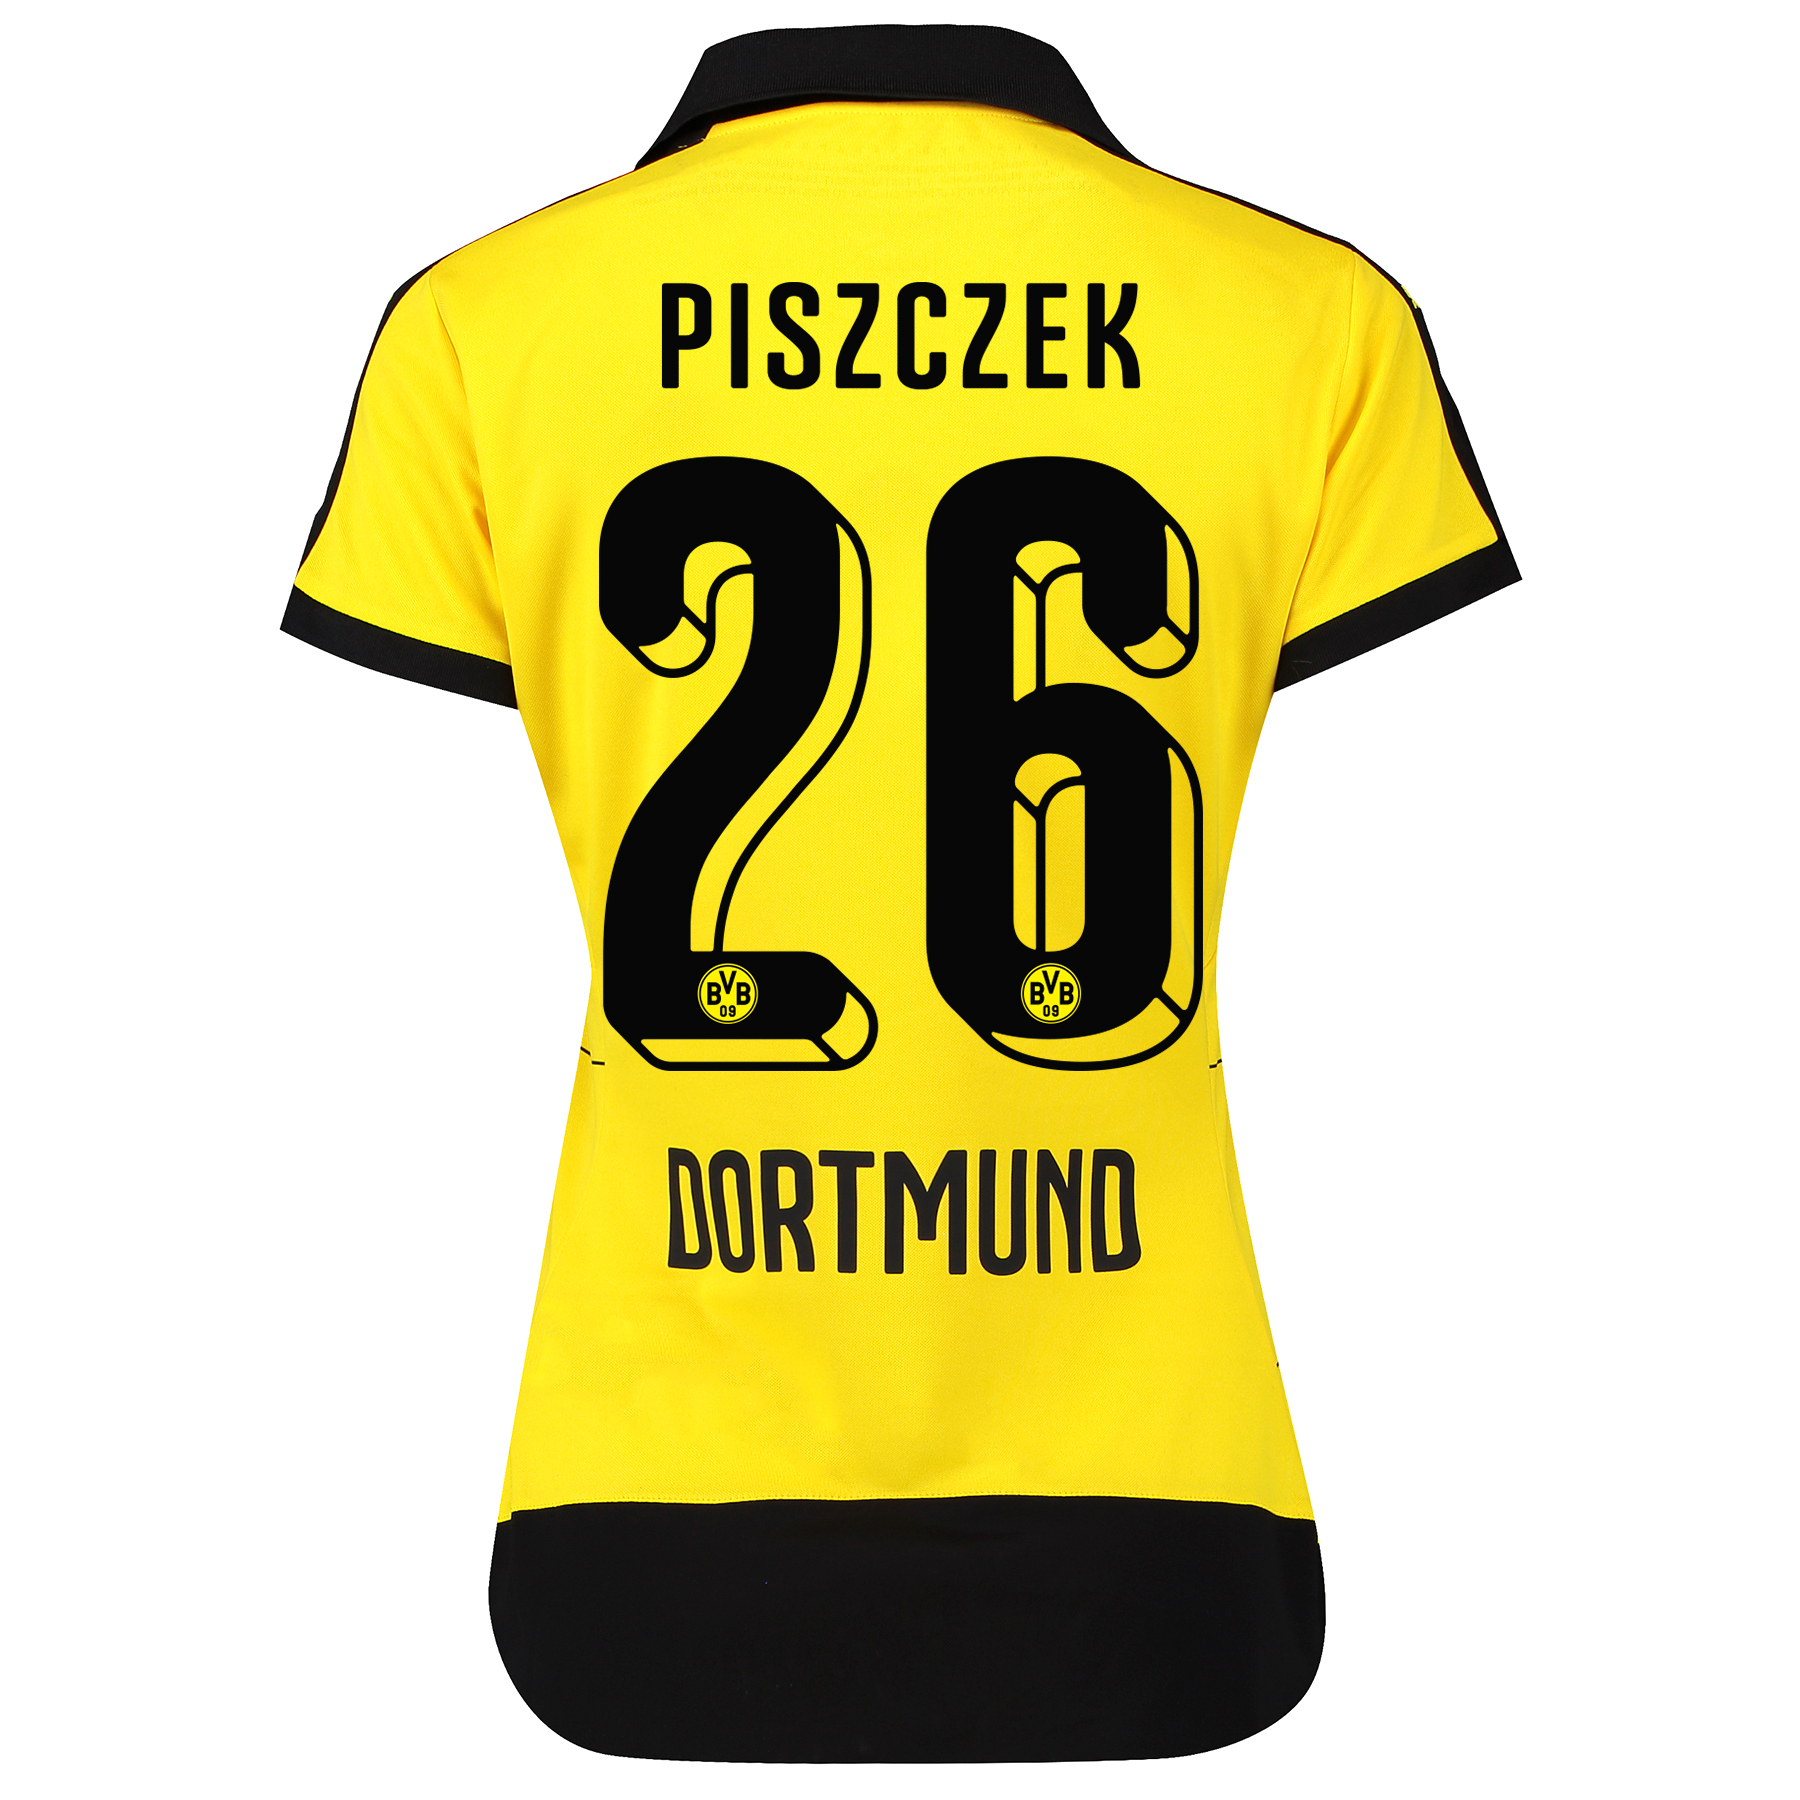 BVB Home Shirt 2015/16 – Womens with Sponsor Yellow with Piszczek 26 p